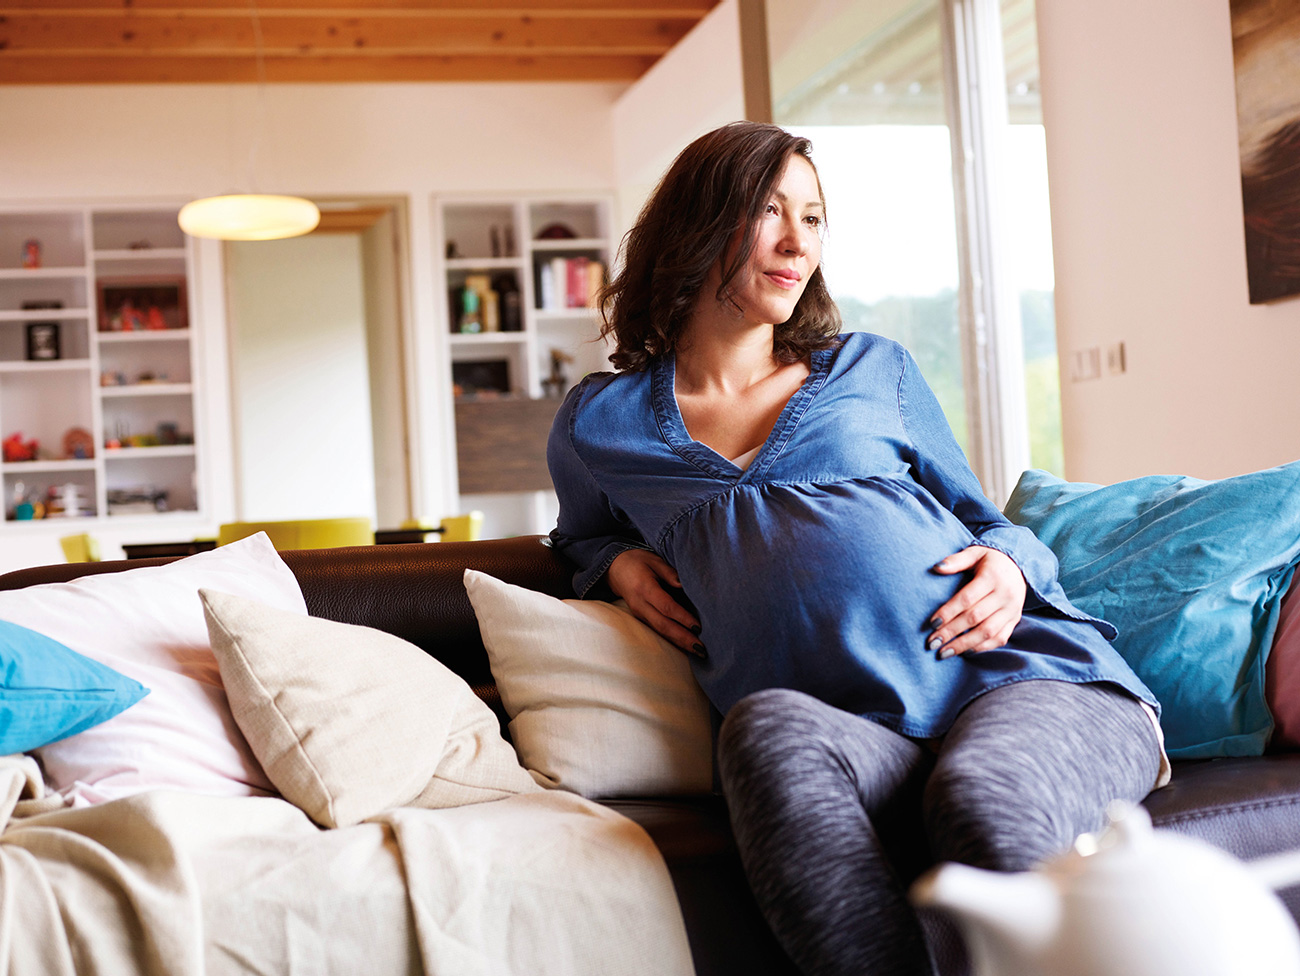 Pregnant woman on couch